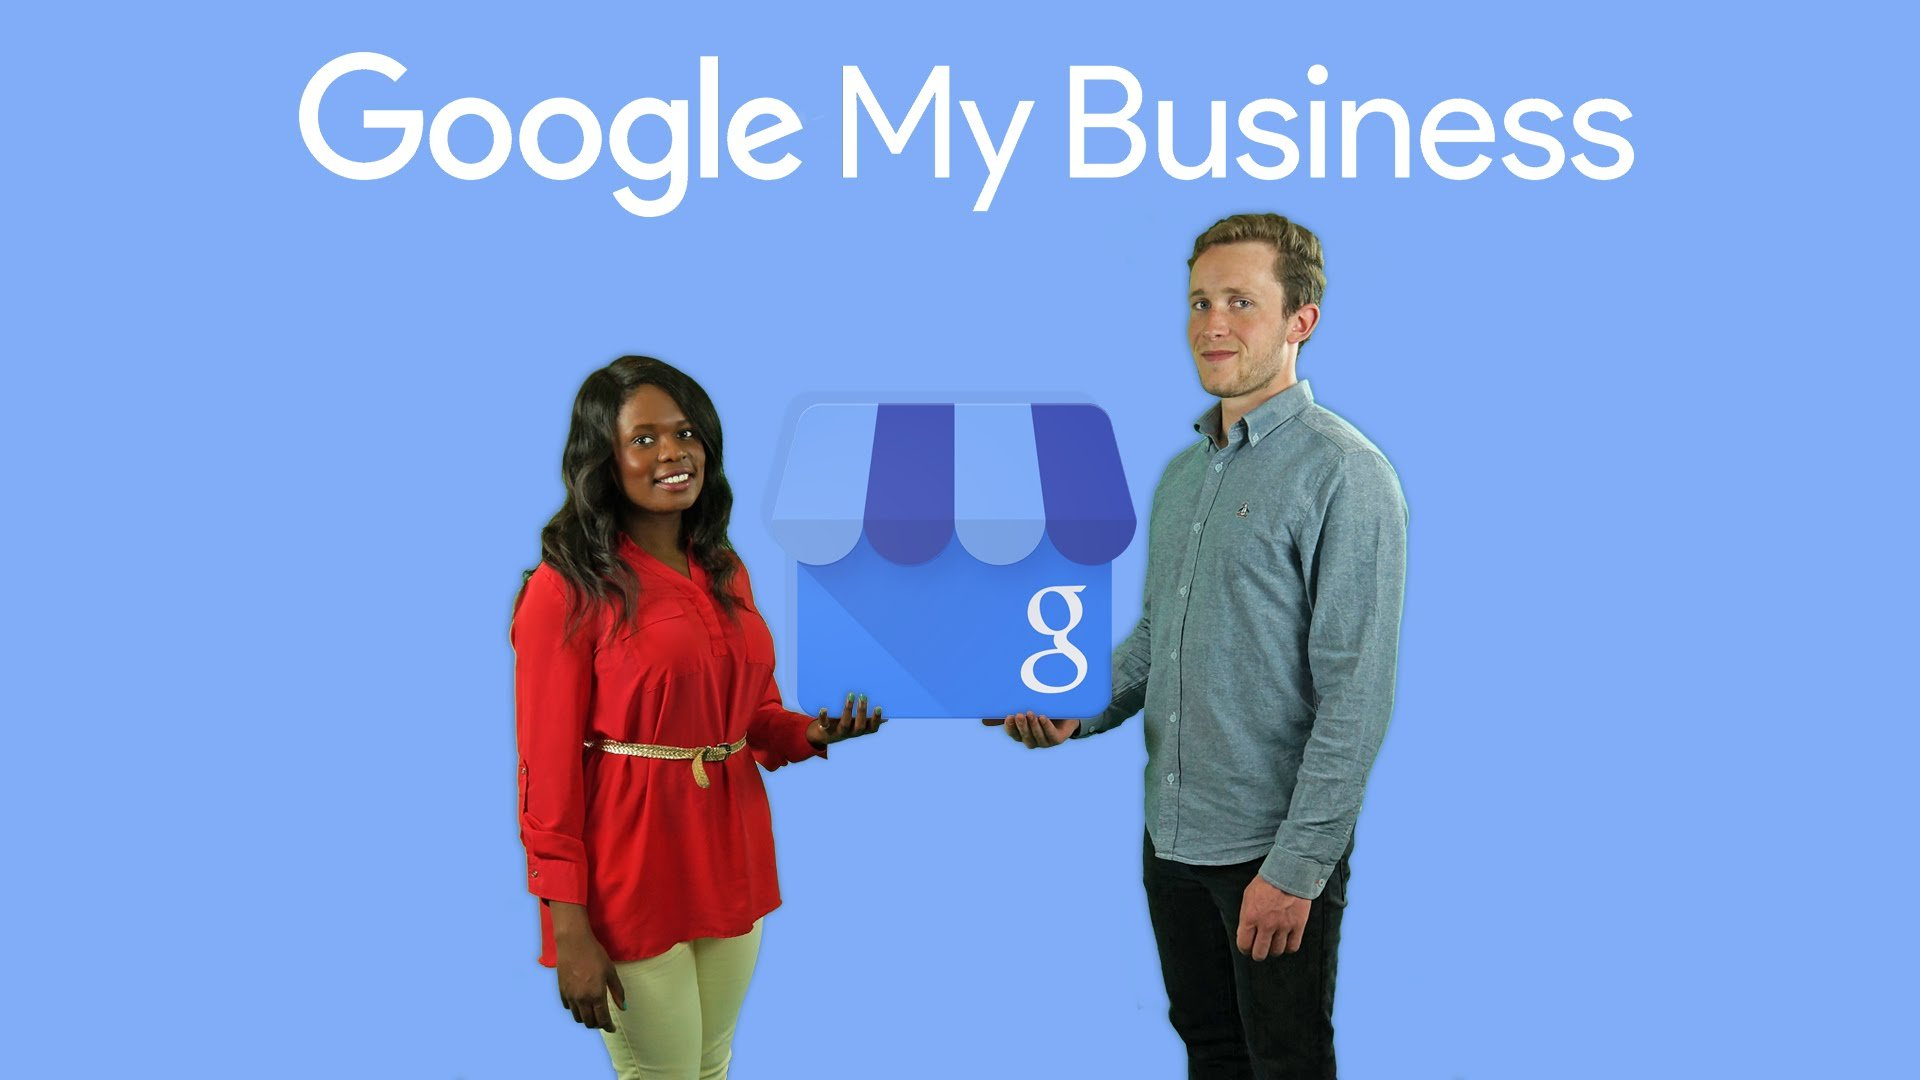 Someone else verified my business on Google